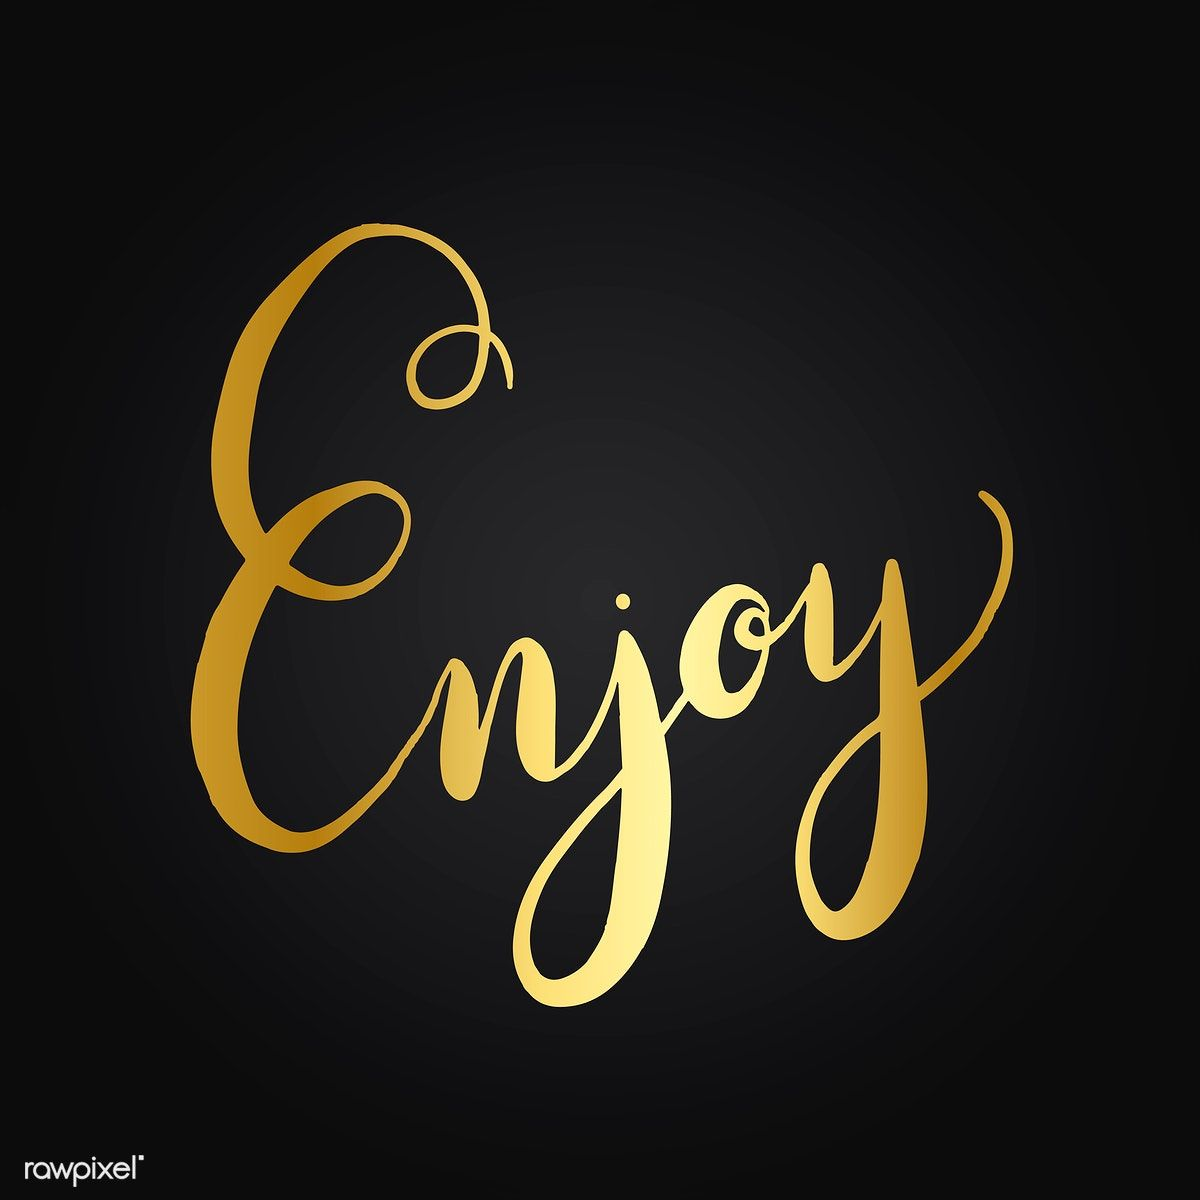 Enjoy handwritten typography style vector free image by